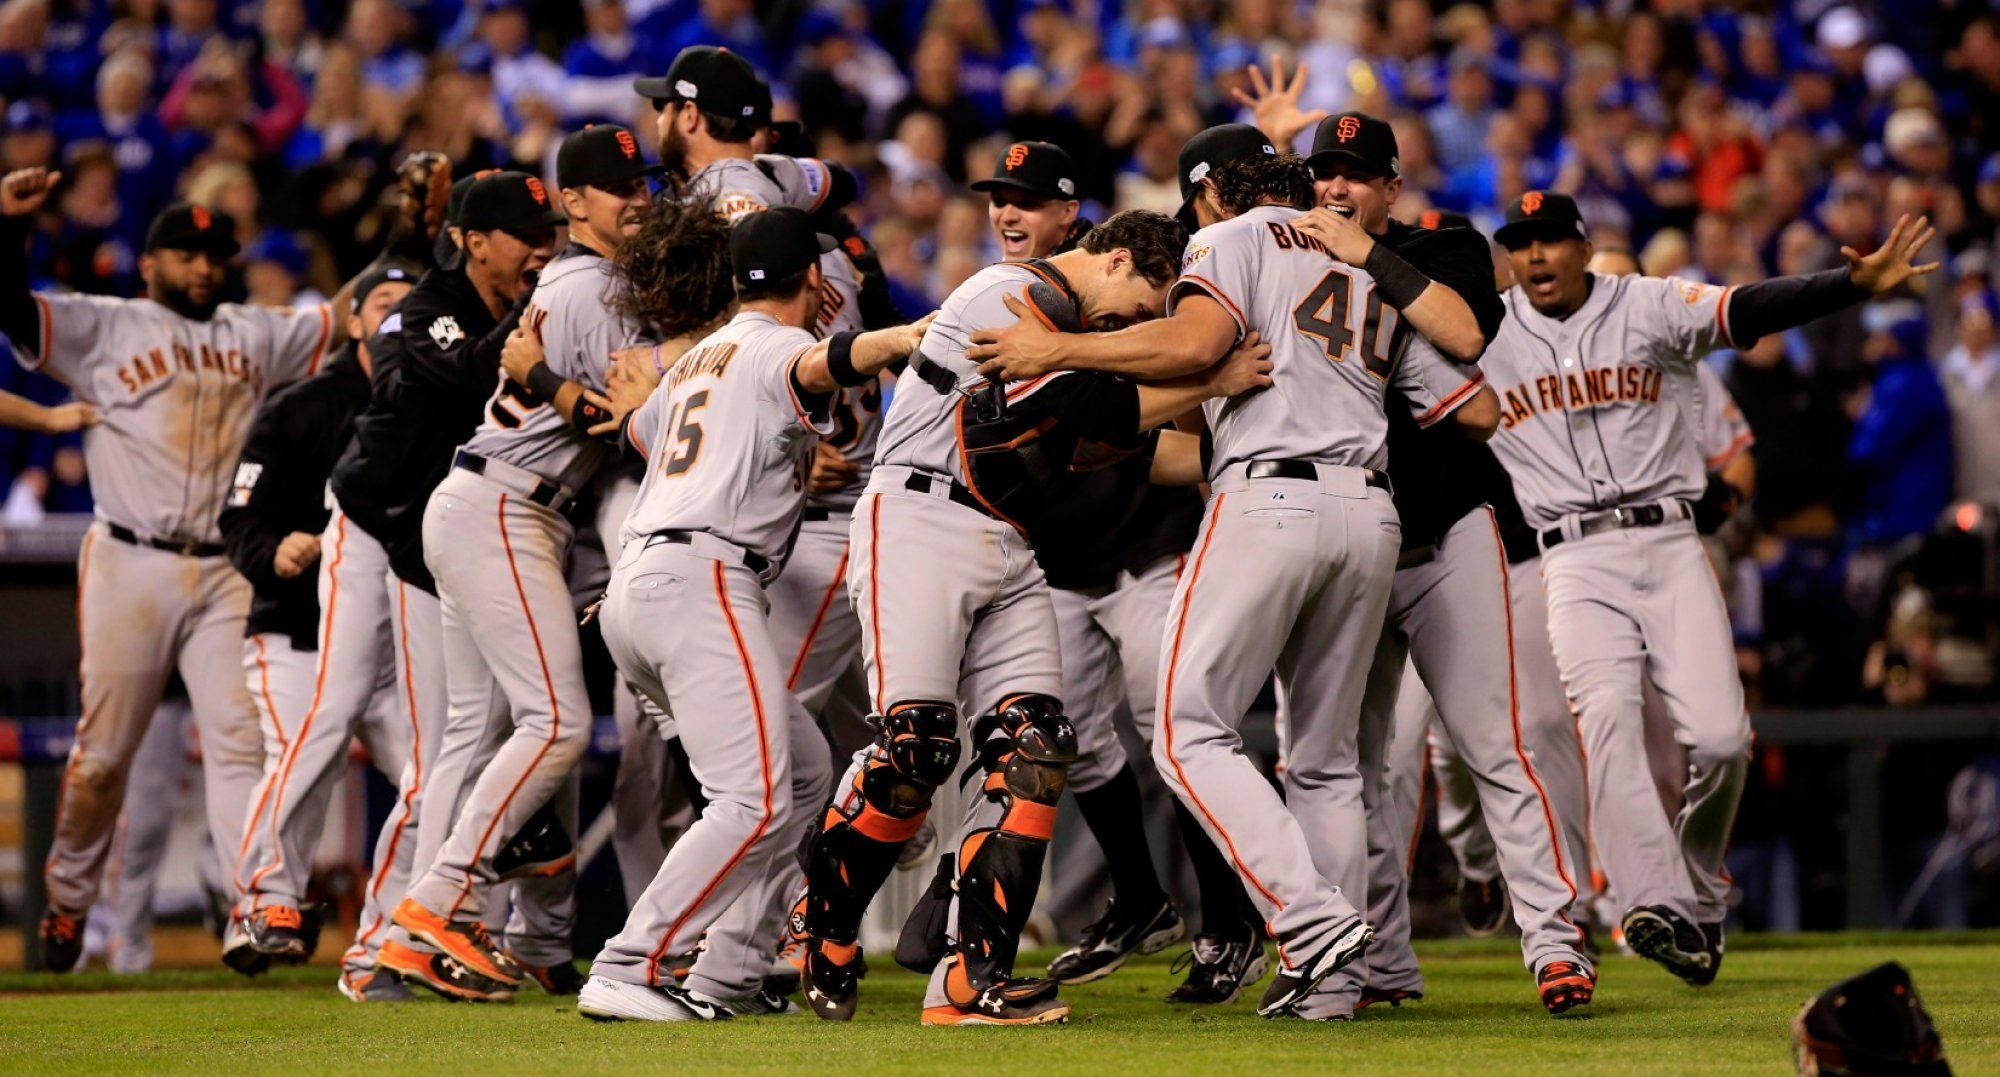 Why San Francisco Giants fans believe this year could be another World Series